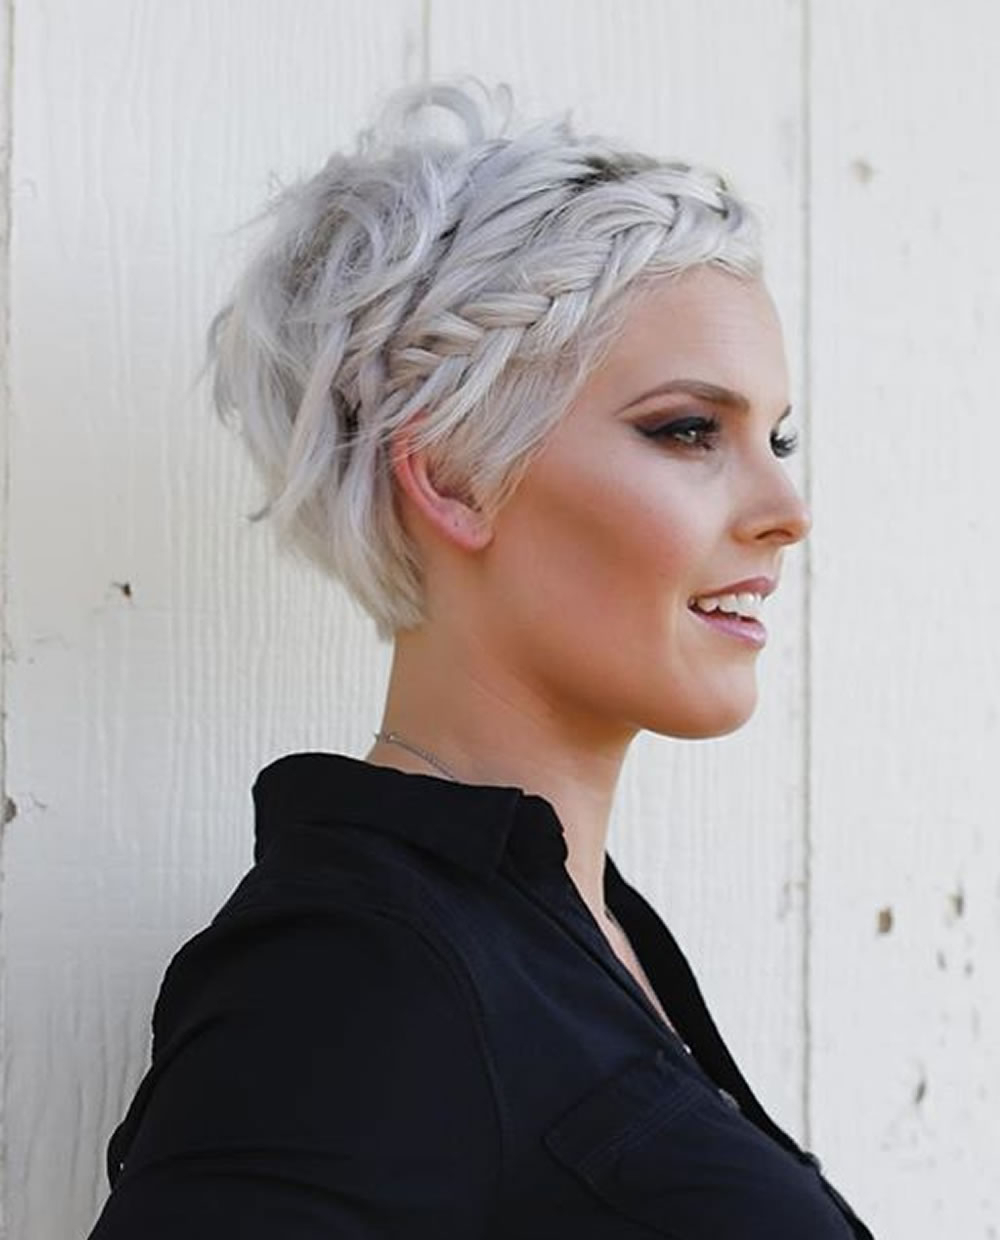 Grey Pixie Hair Cut & Gray Hair Colors For Short Hair – Page 6 inside Short Haircuts For Women With Grey Hair